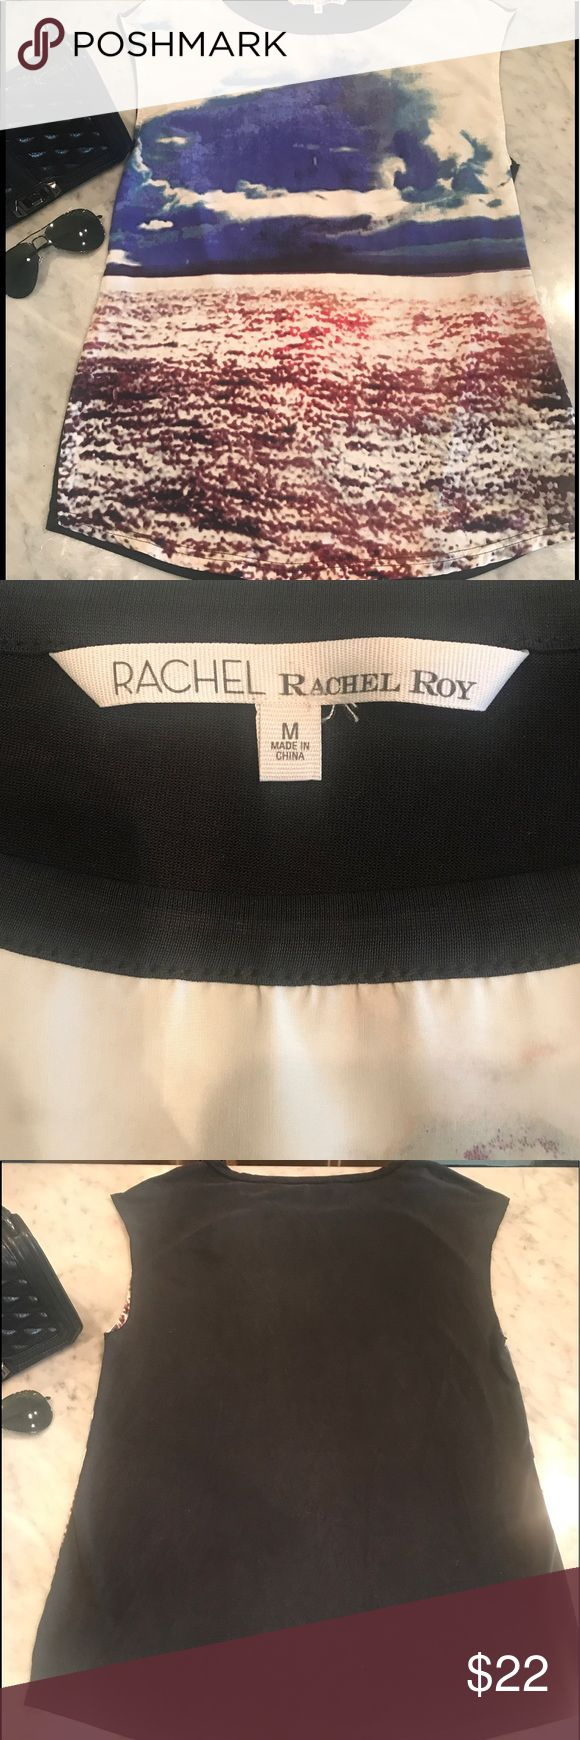 👚 RACHEL Rachel Roy Top 👚 ⚓️ Beautiful Silk Front Watercolor Design by Rachel Roy ⚓️ T-shirt Paneled back. Such a comfy and stylish shirt that can be dressed up or dressed down!  Don't miss out on this awesome piece that will have compliments coming your way!! 💗 NWOT 💗 RACHEL Rachel Roy Tops